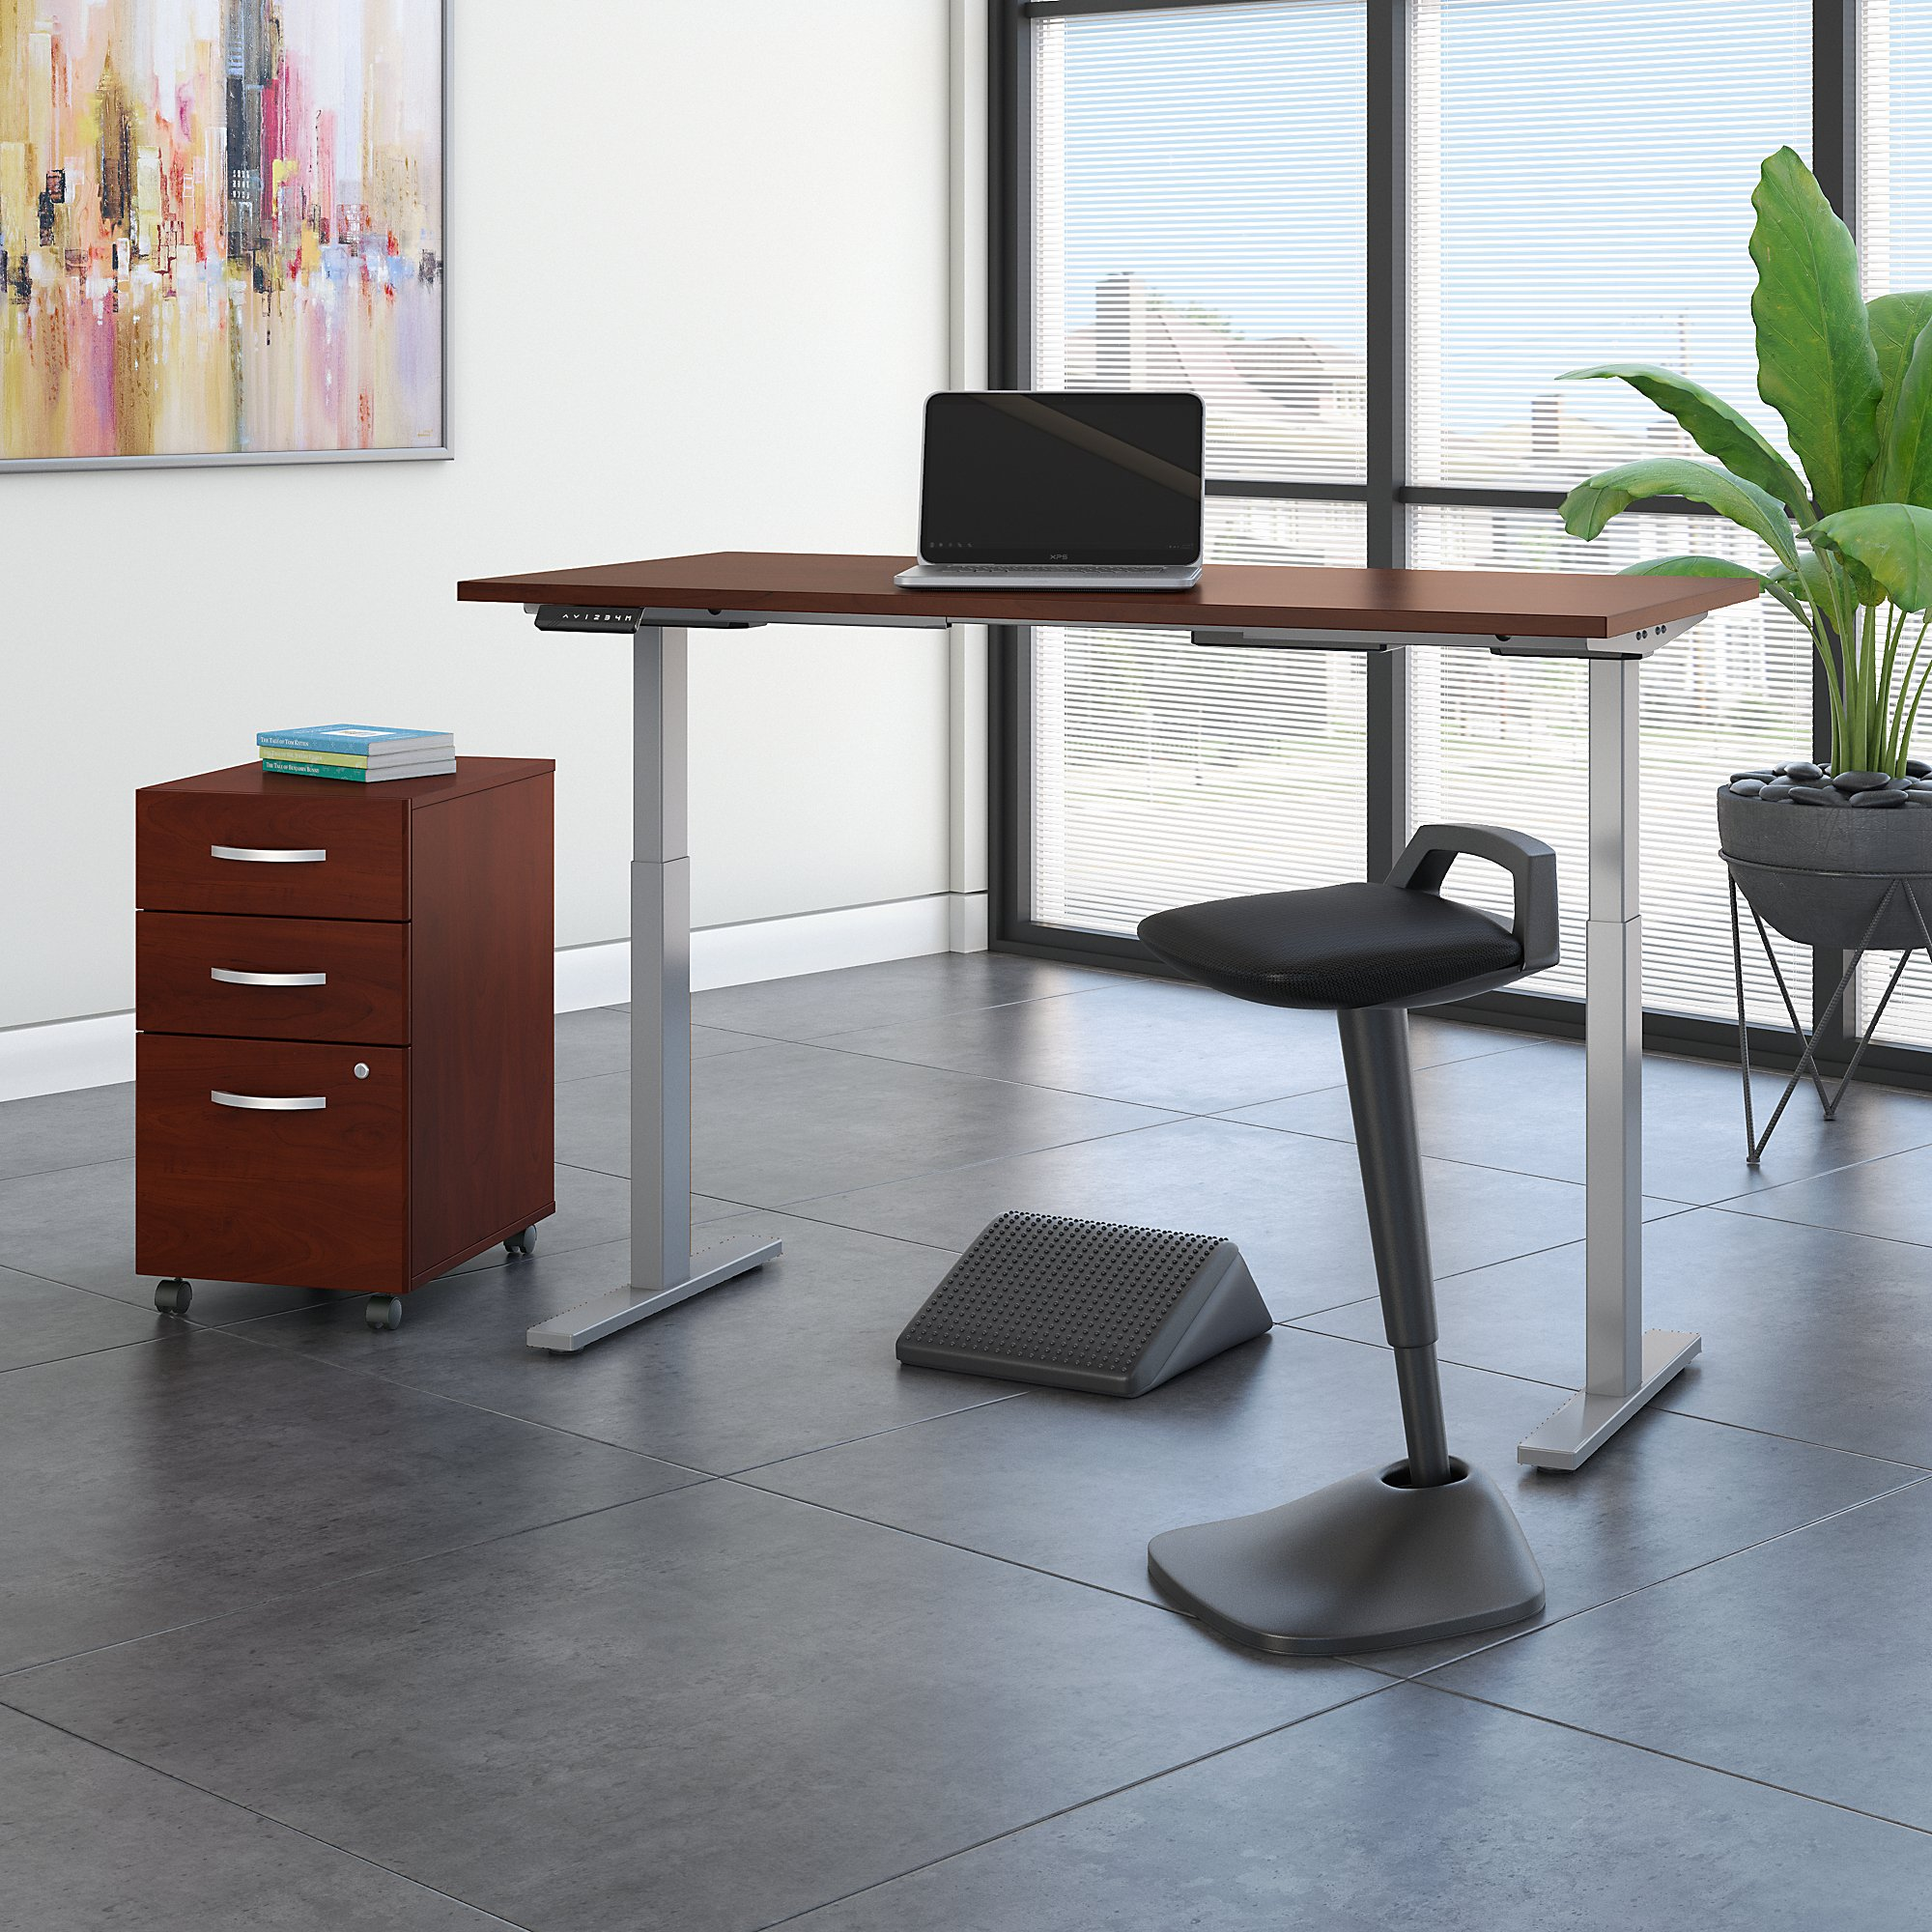 Image of: Move 60 Series By Bush Business Furniture 60w X 30d Adjustable Standing Desk With Lean Stool Storage And Ergonomic Accessories